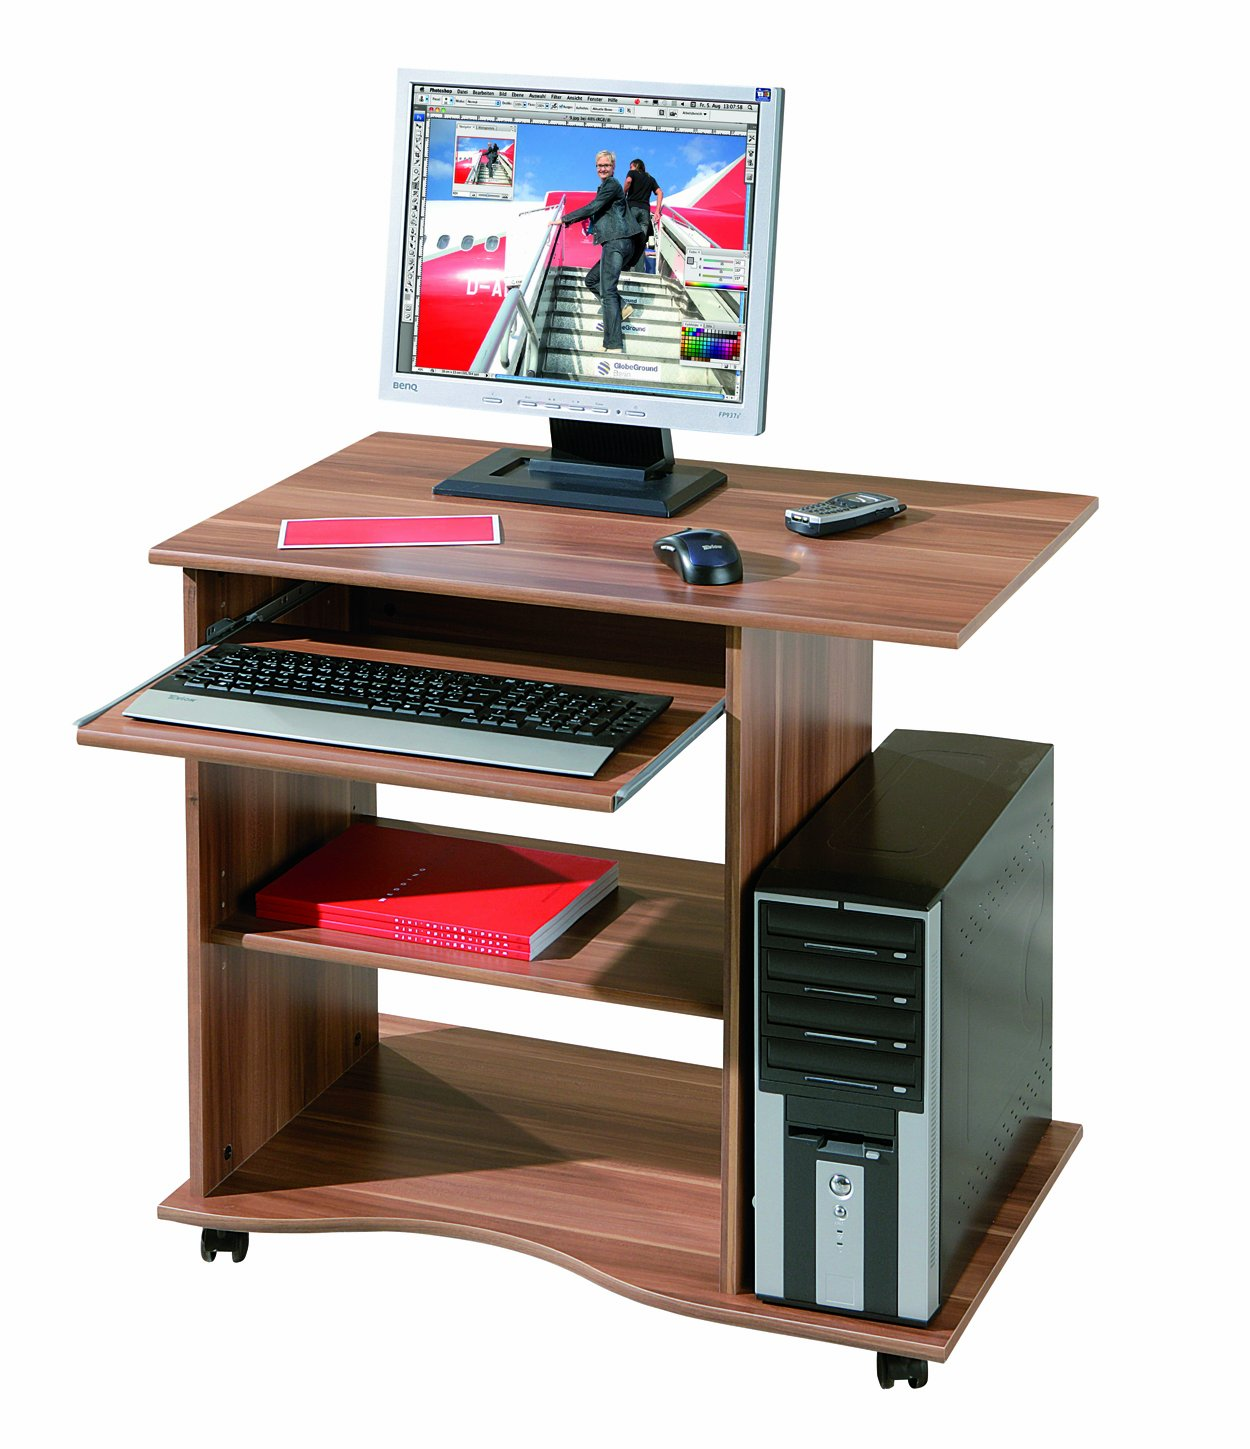 small computer desk walnut effect castors keyboard shelf office furniture ebay. Black Bedroom Furniture Sets. Home Design Ideas